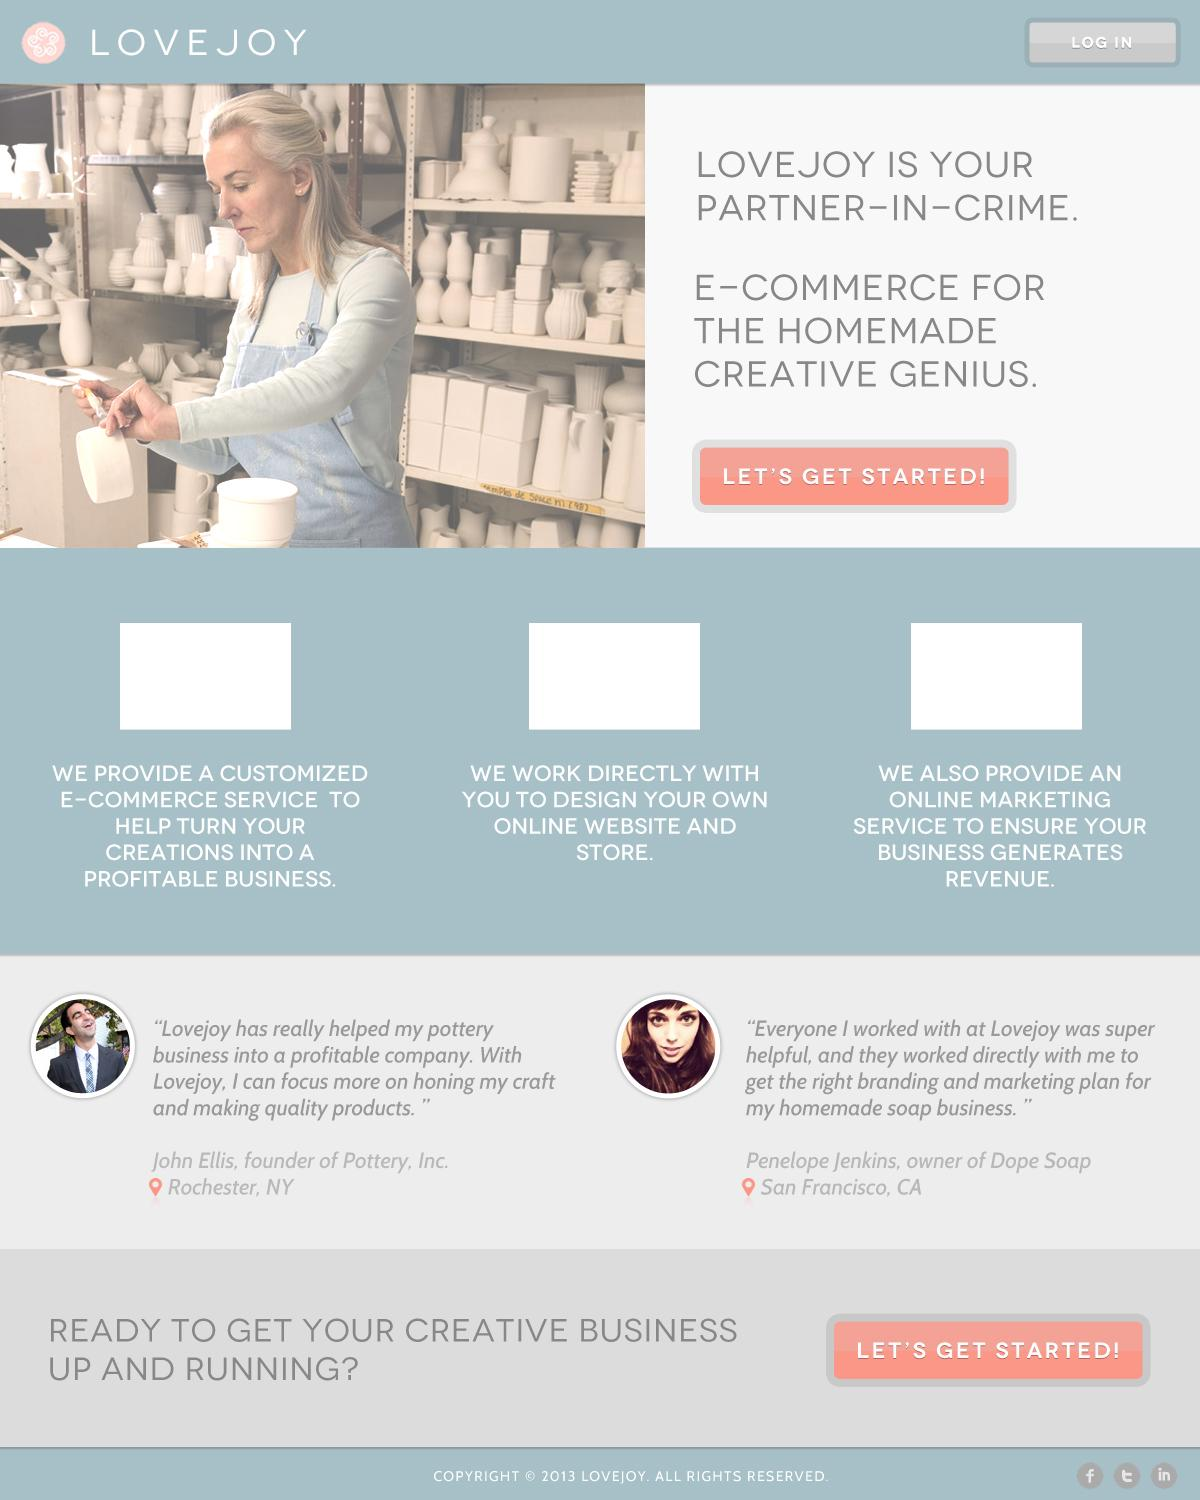 Lovejoy - E-commerce for the homemade creative genius - image 2 - student project